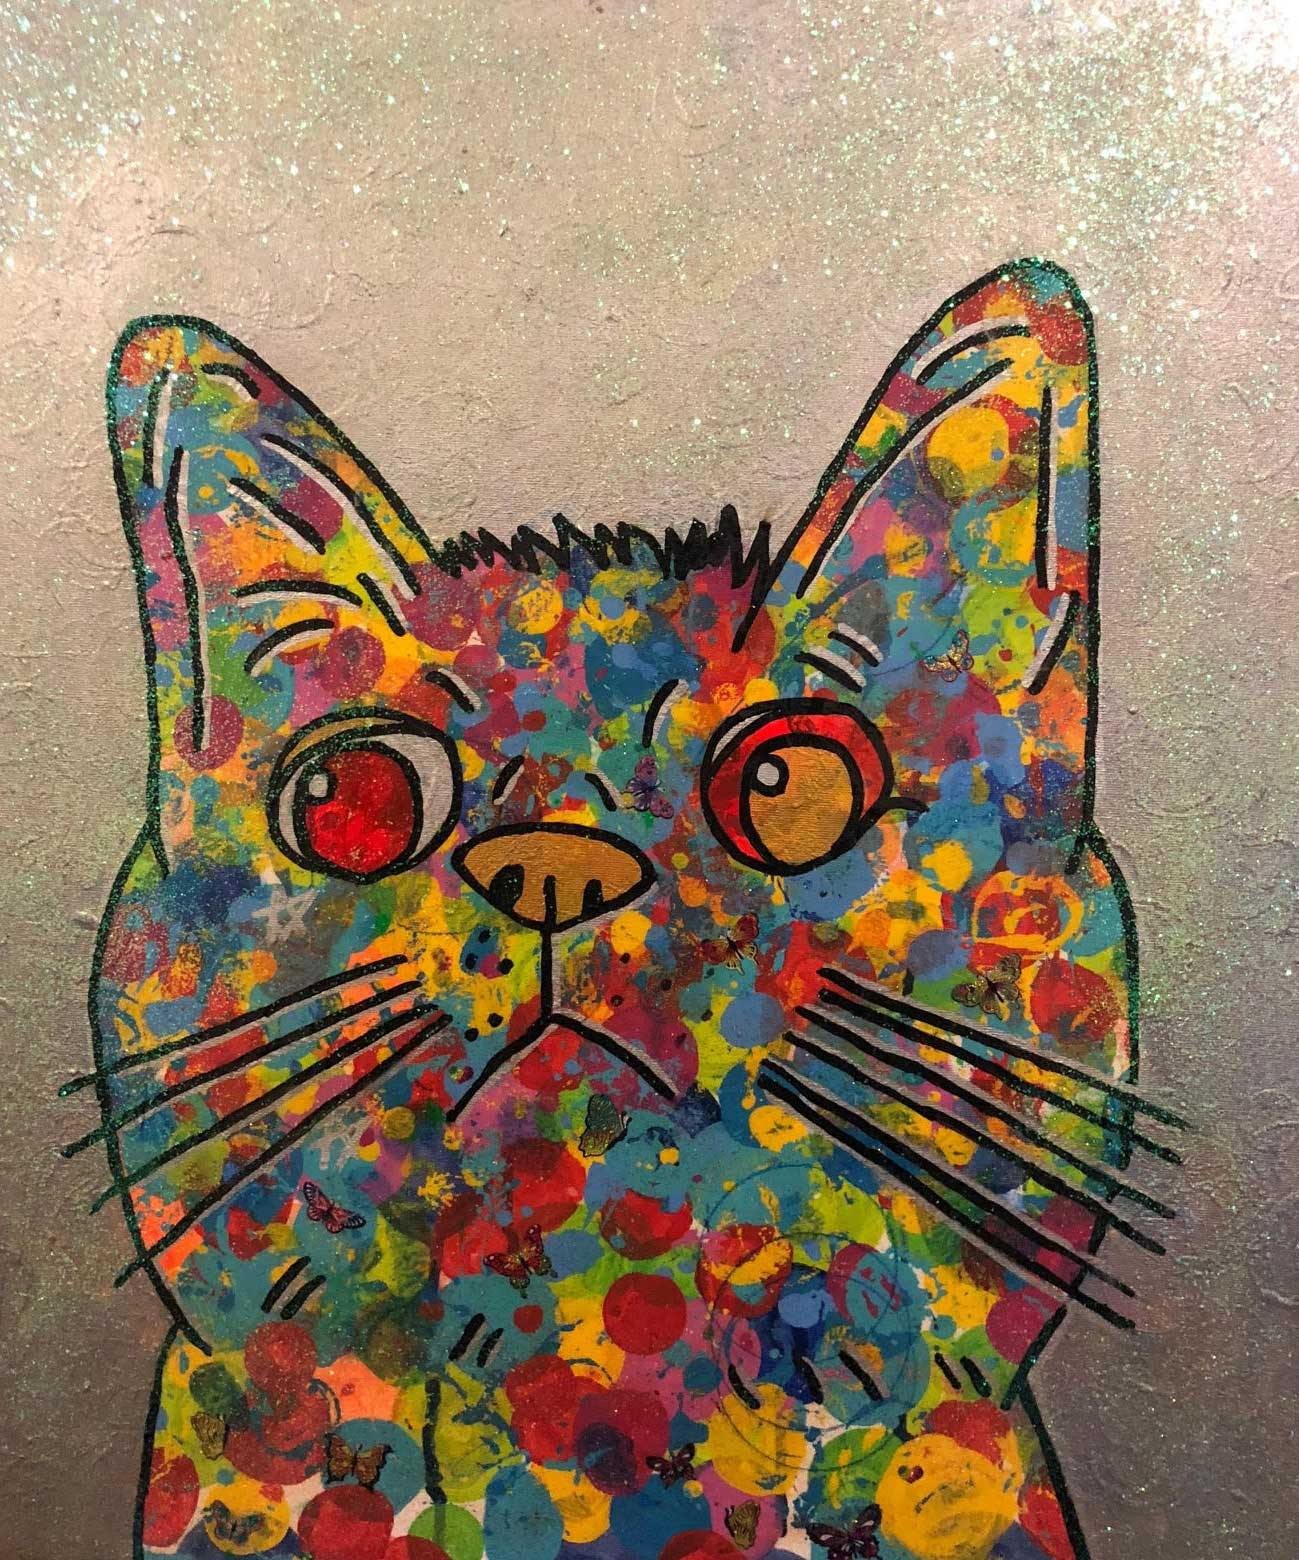 Cosmic moggy by Barrie J Davies 2018, mixed media on canvas, unframed, 50cm x 60cm. Barrie J Davies is an Artist - Pop Art and Street art inspired Artist based in Brighton England UK - Pop Art Paintings, Street Art Prints & Editions available.